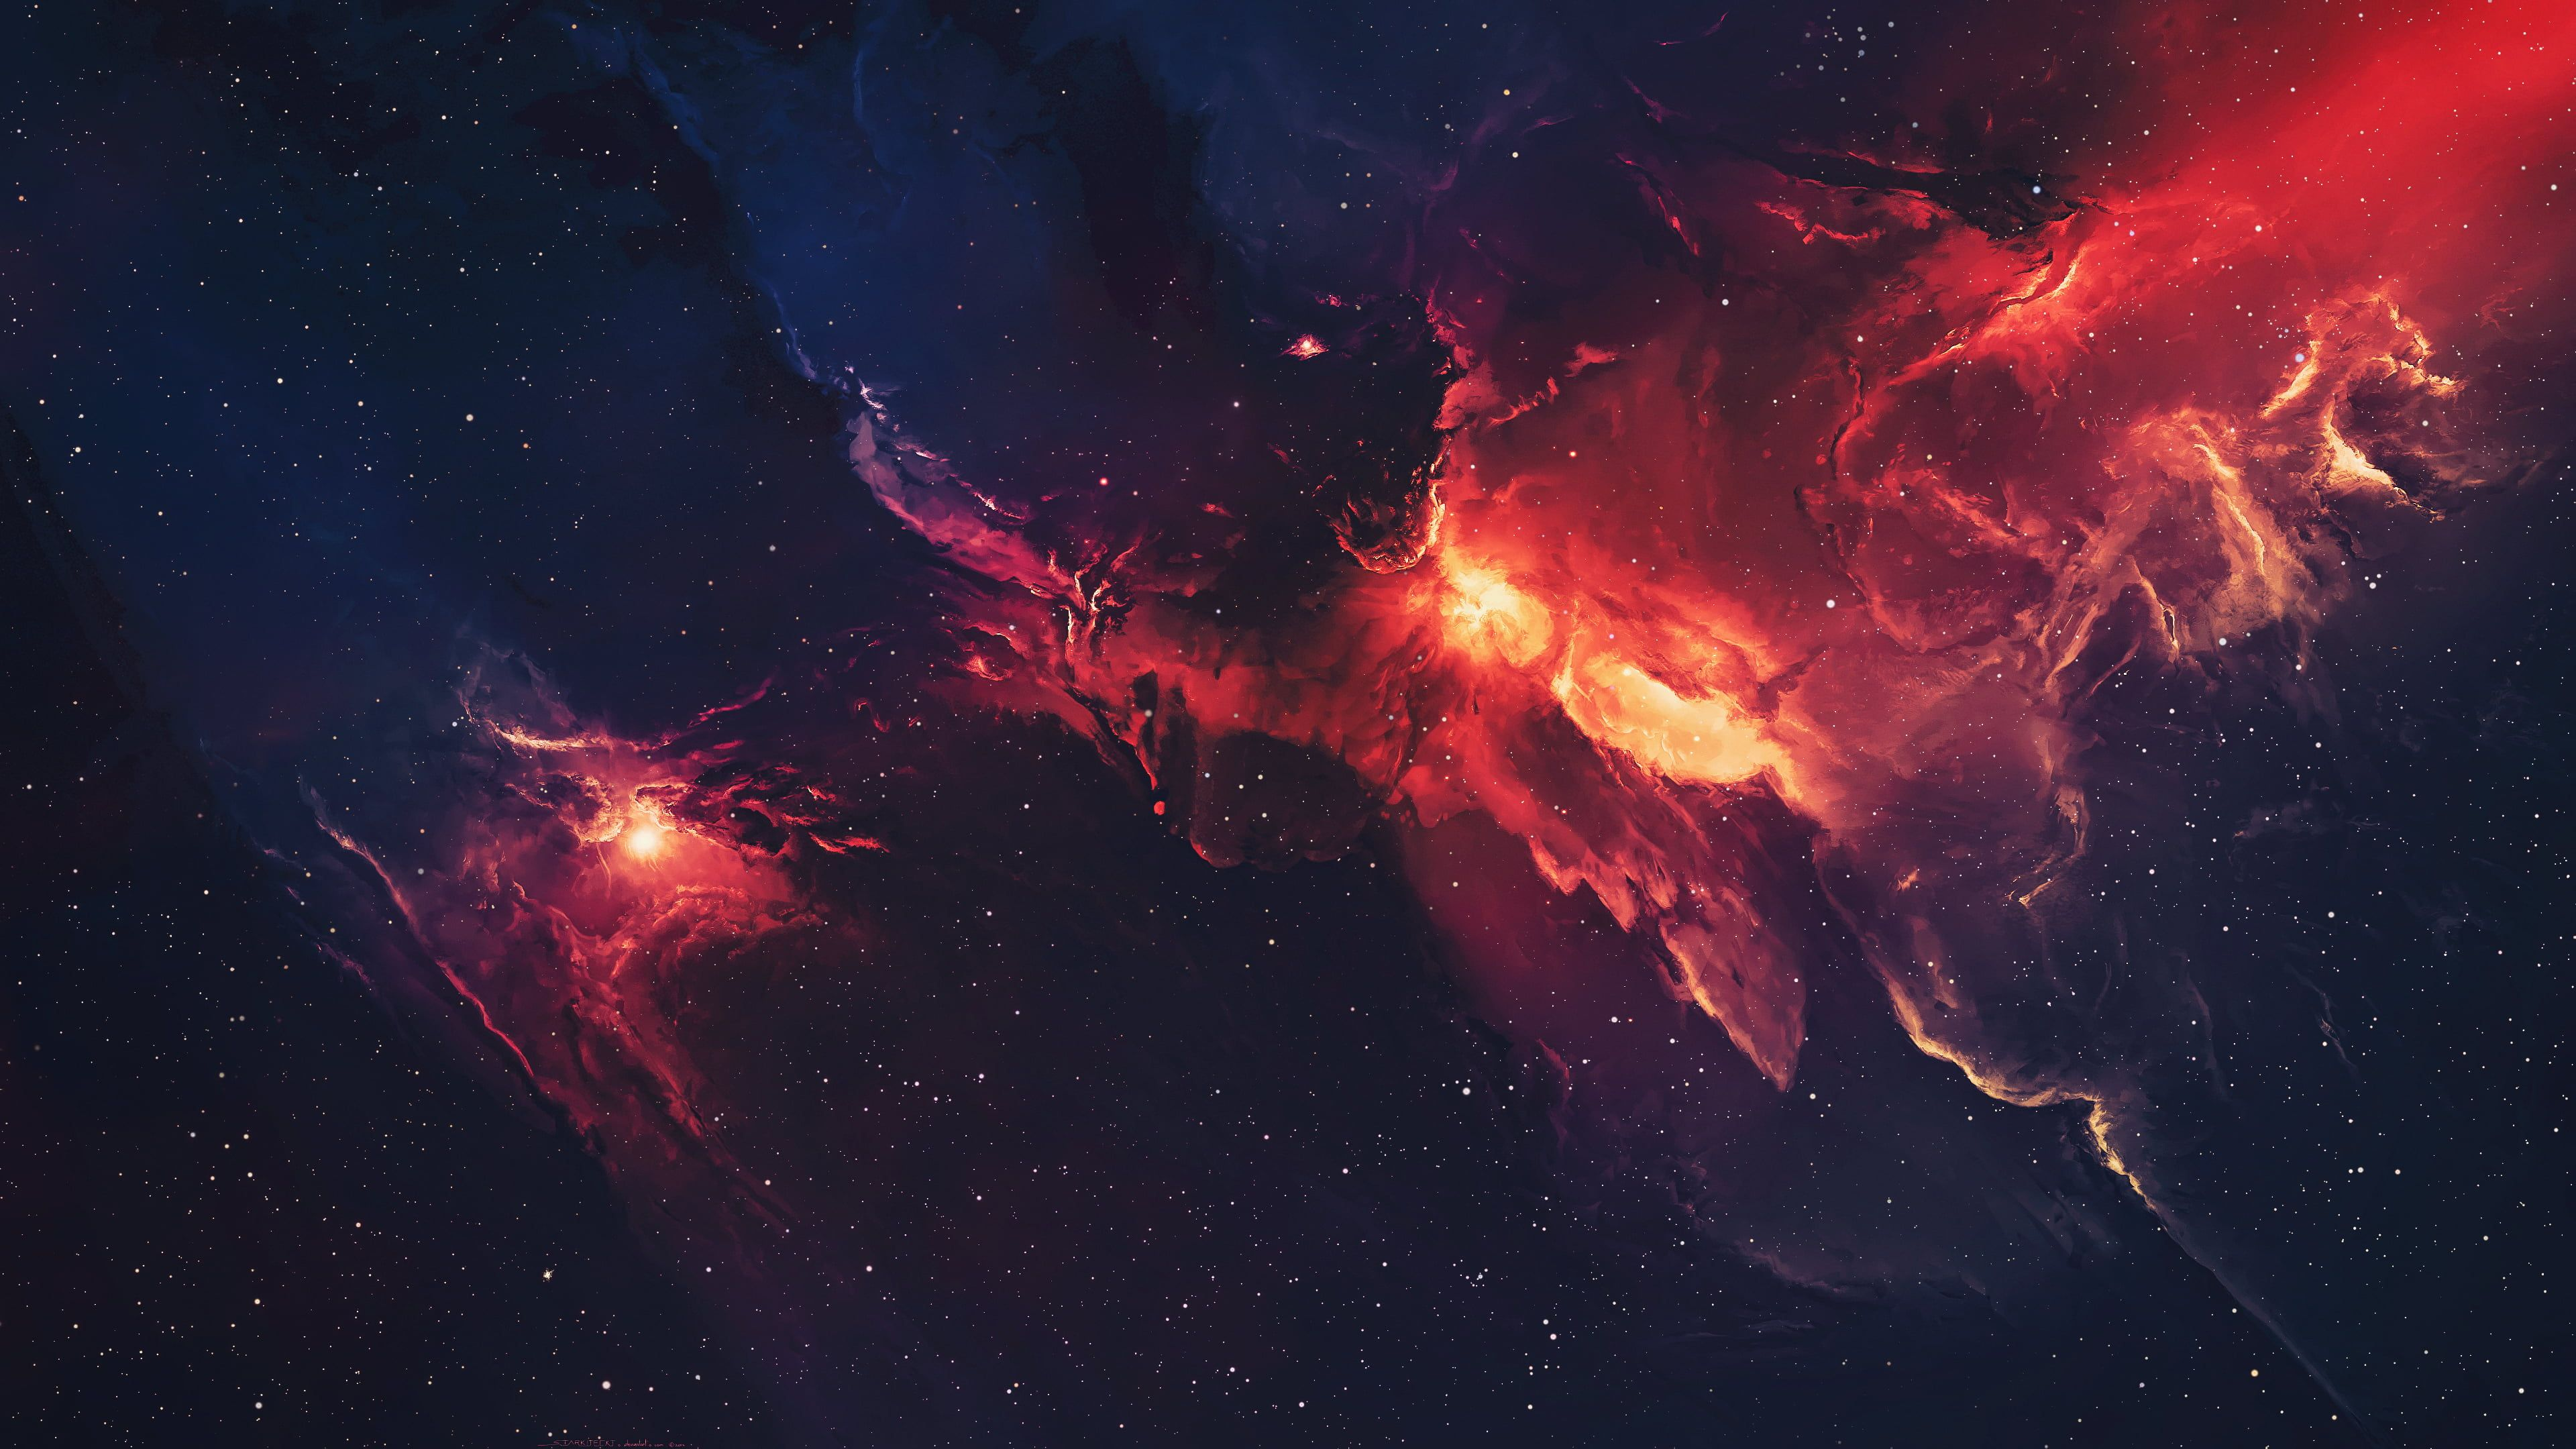 Red Galaxy Untitled Galaxy Space Stars Universe Spacescapes Nebula 4k Wallpaper Hdwallpaper Desktop In 2020 Nebula Wallpaper Nebula Galaxy Wallpaper